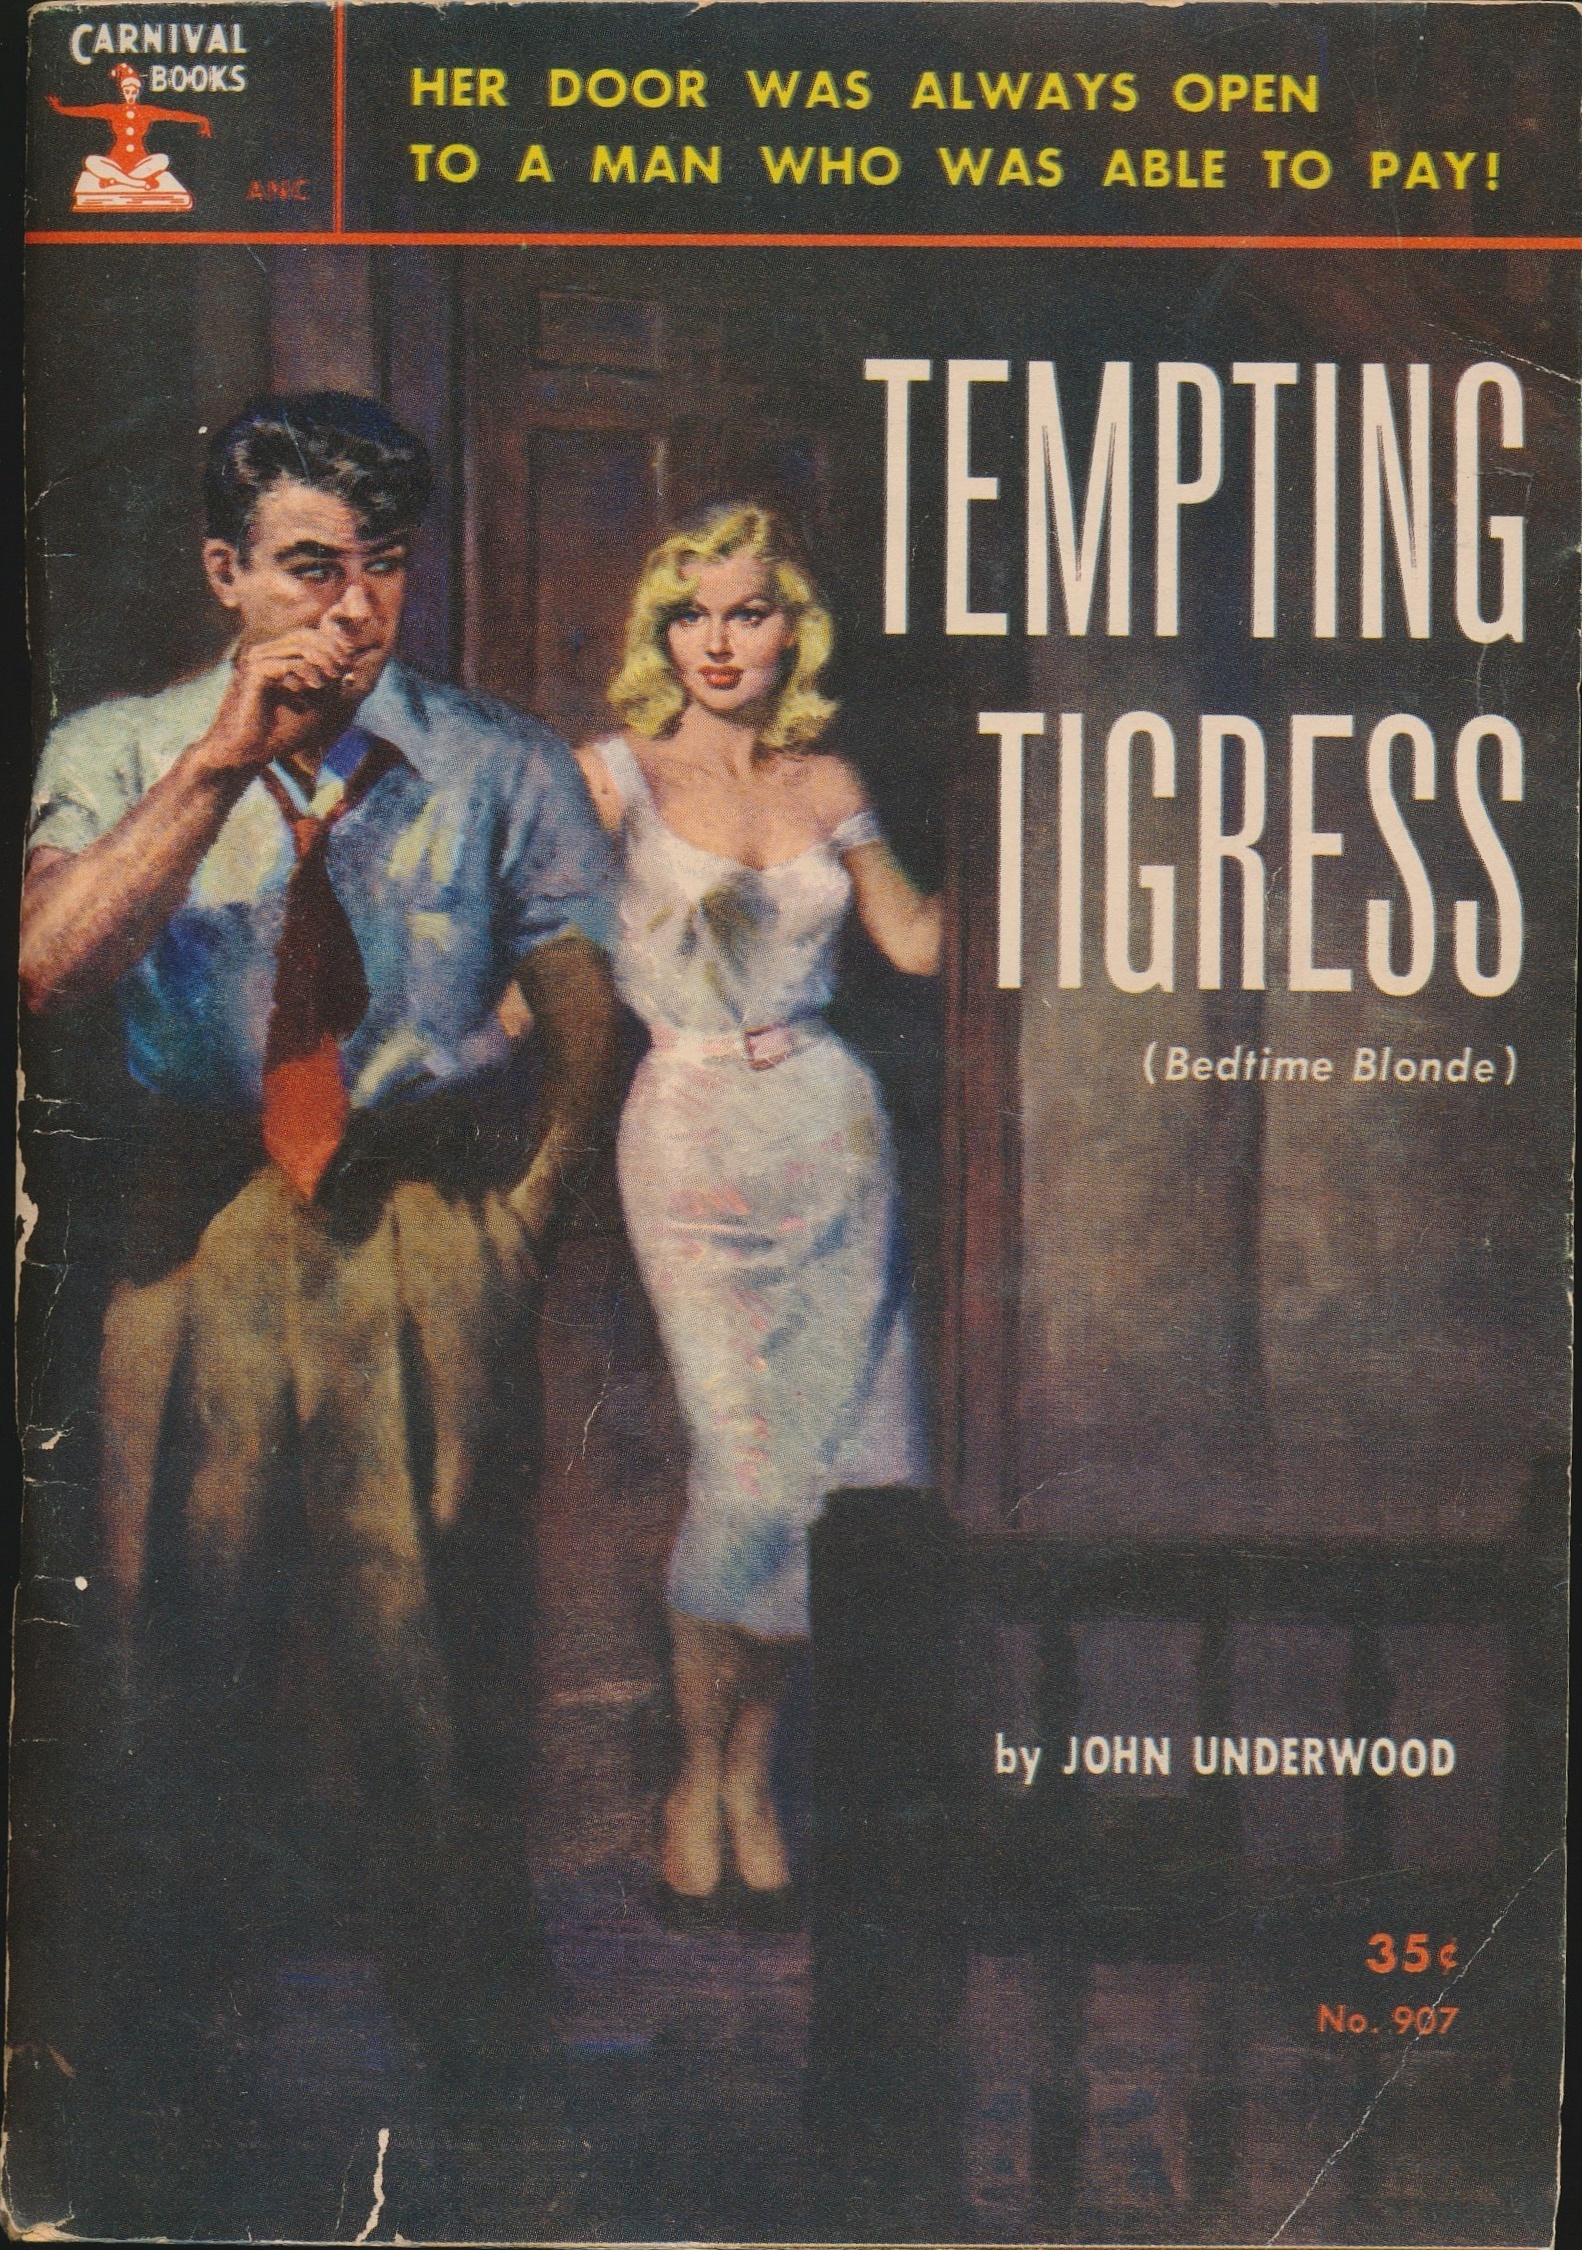 Tempting Tigress, Carnival Books #907, 1953